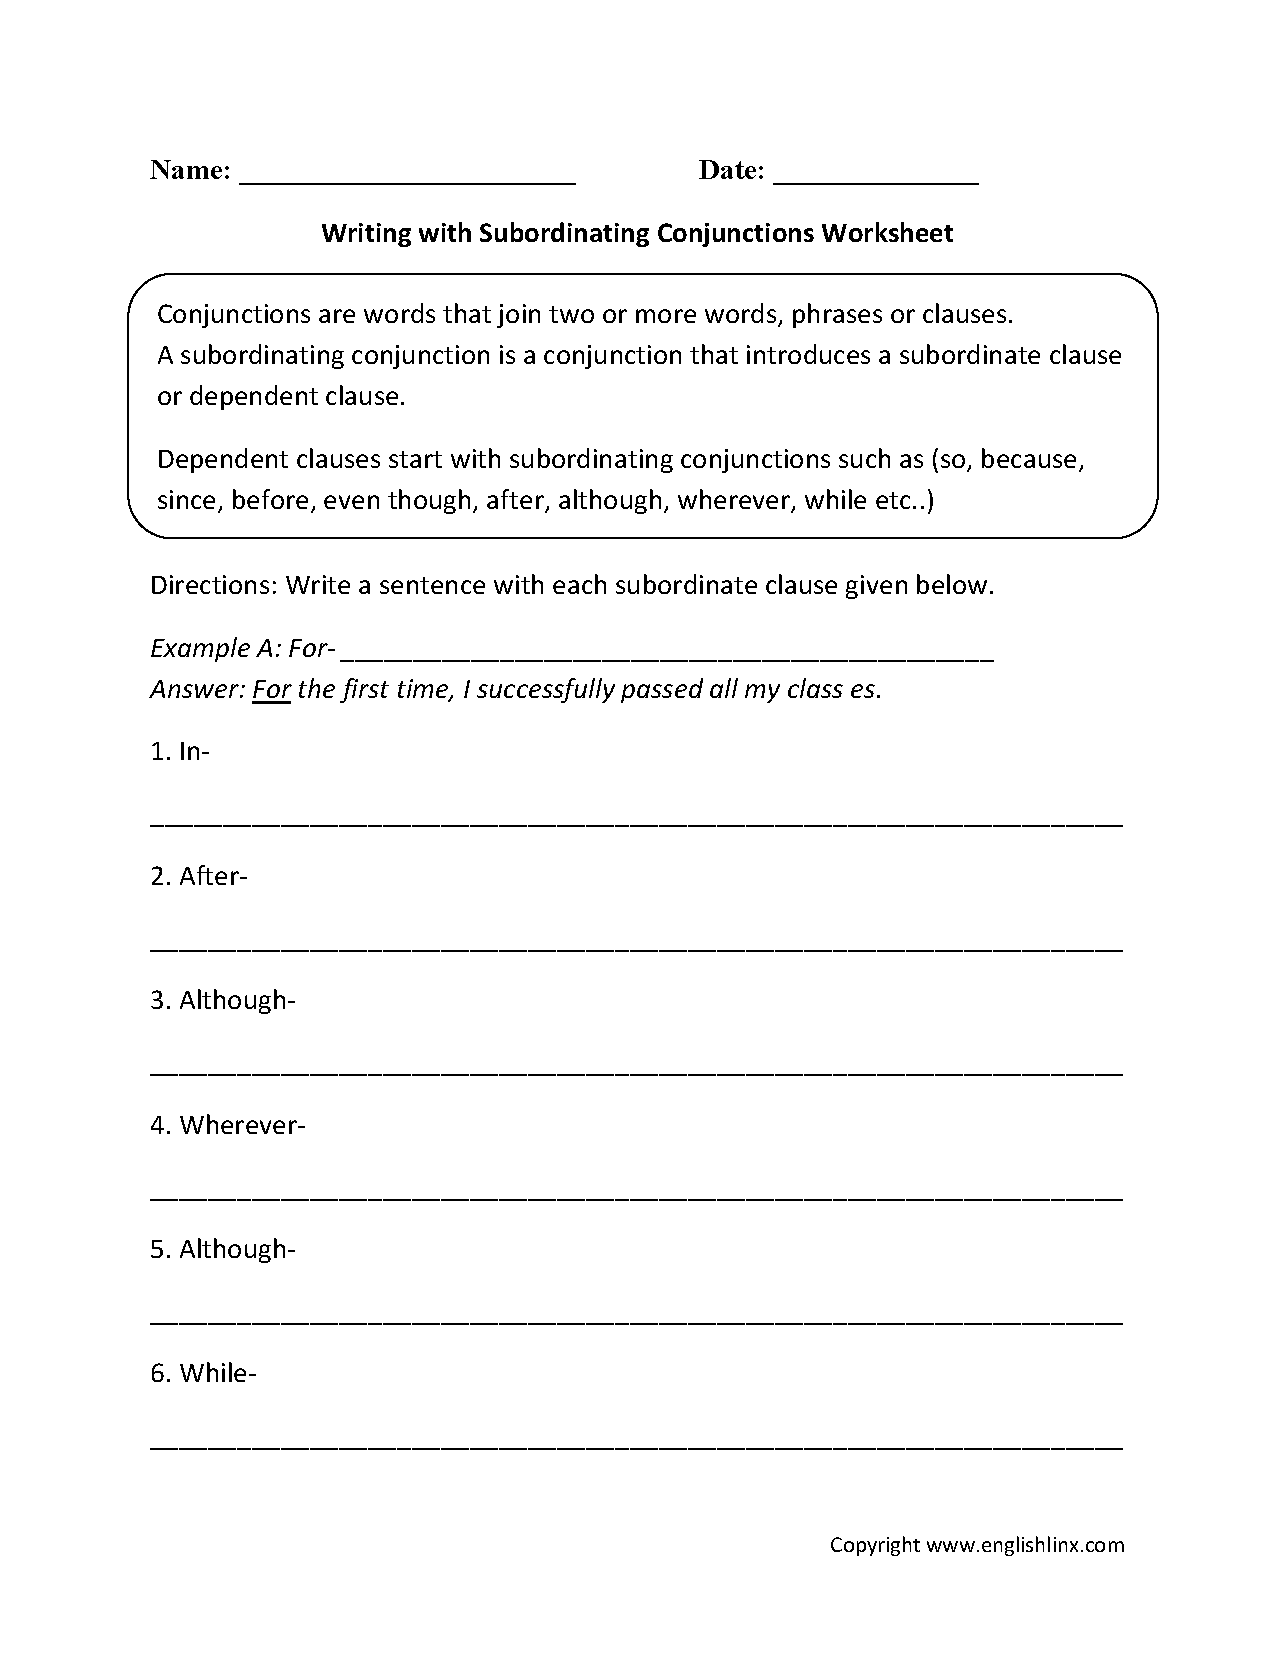 worksheet Conjunctive Adverbs Worksheets englishlinx com conjunctions worksheets subordinating worksheets